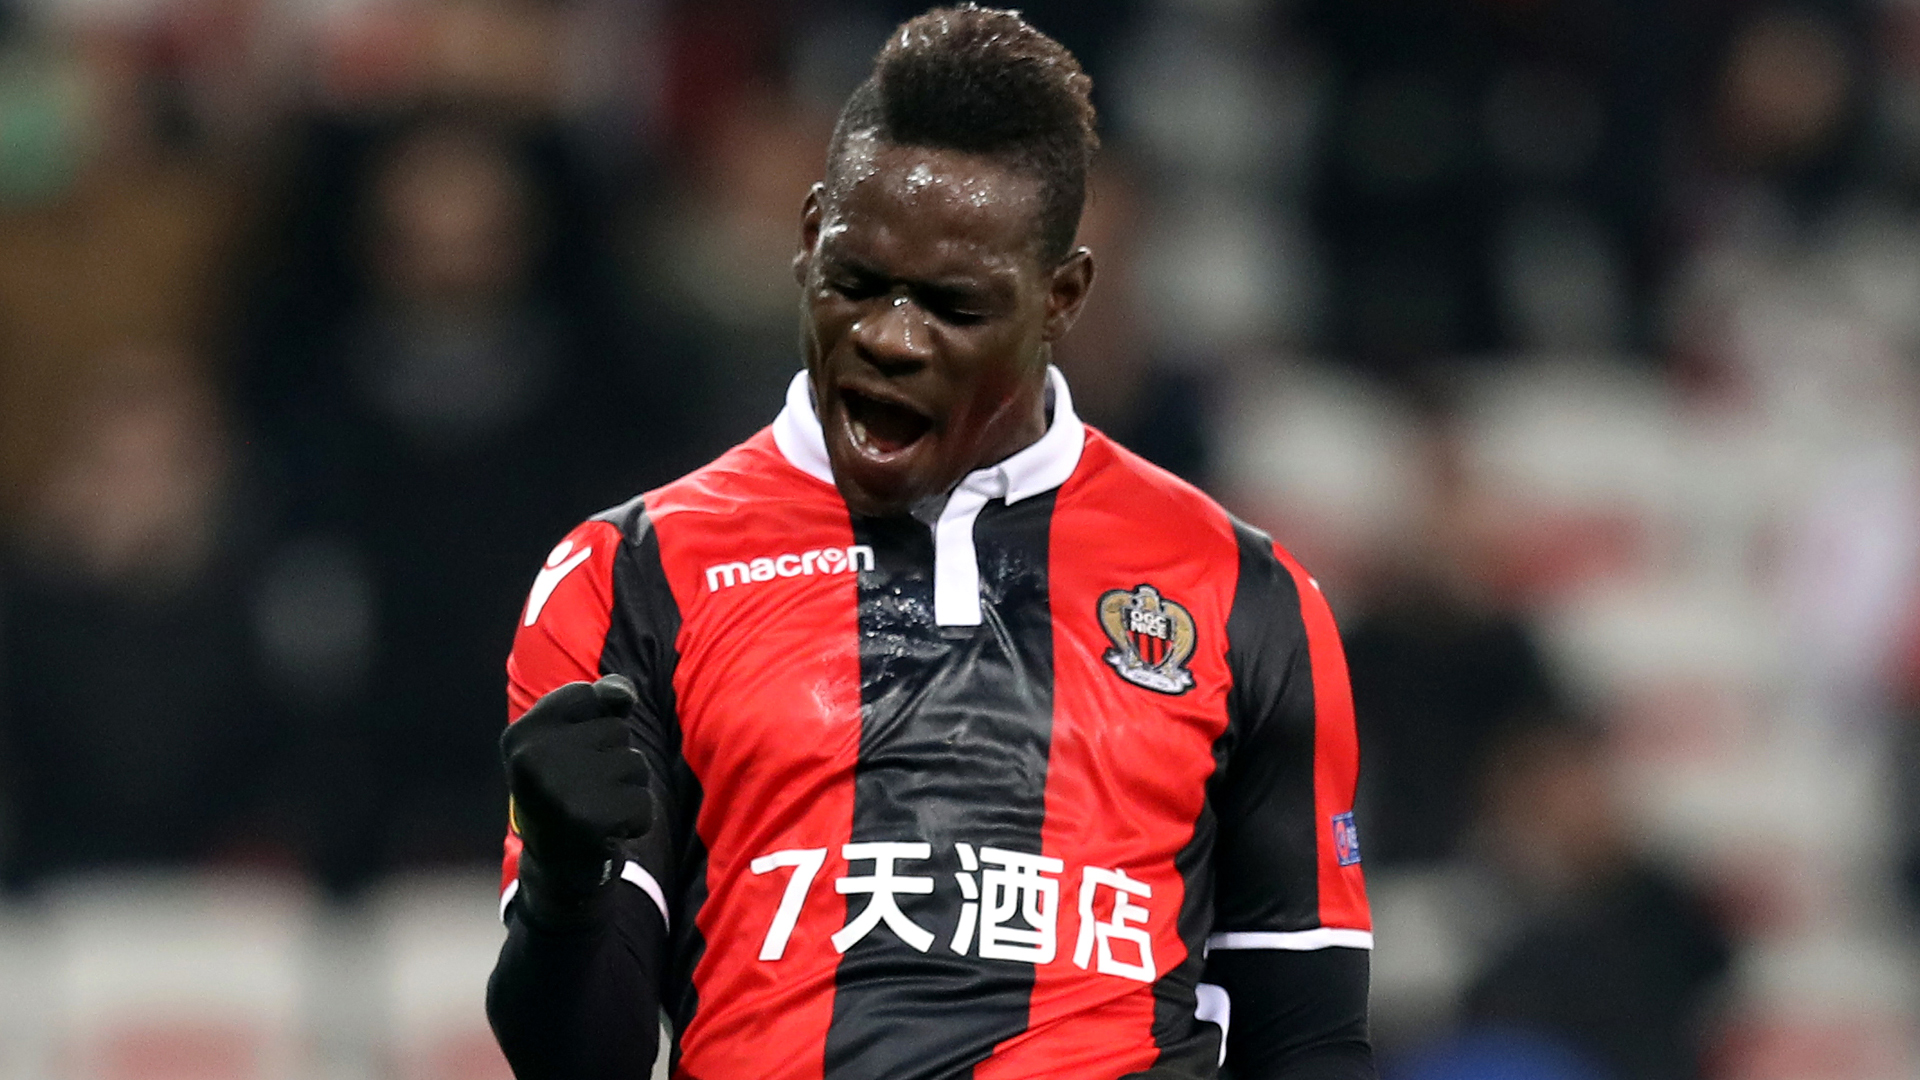 Mino Raiola Advises Napoli to Sign Mario Balotelli